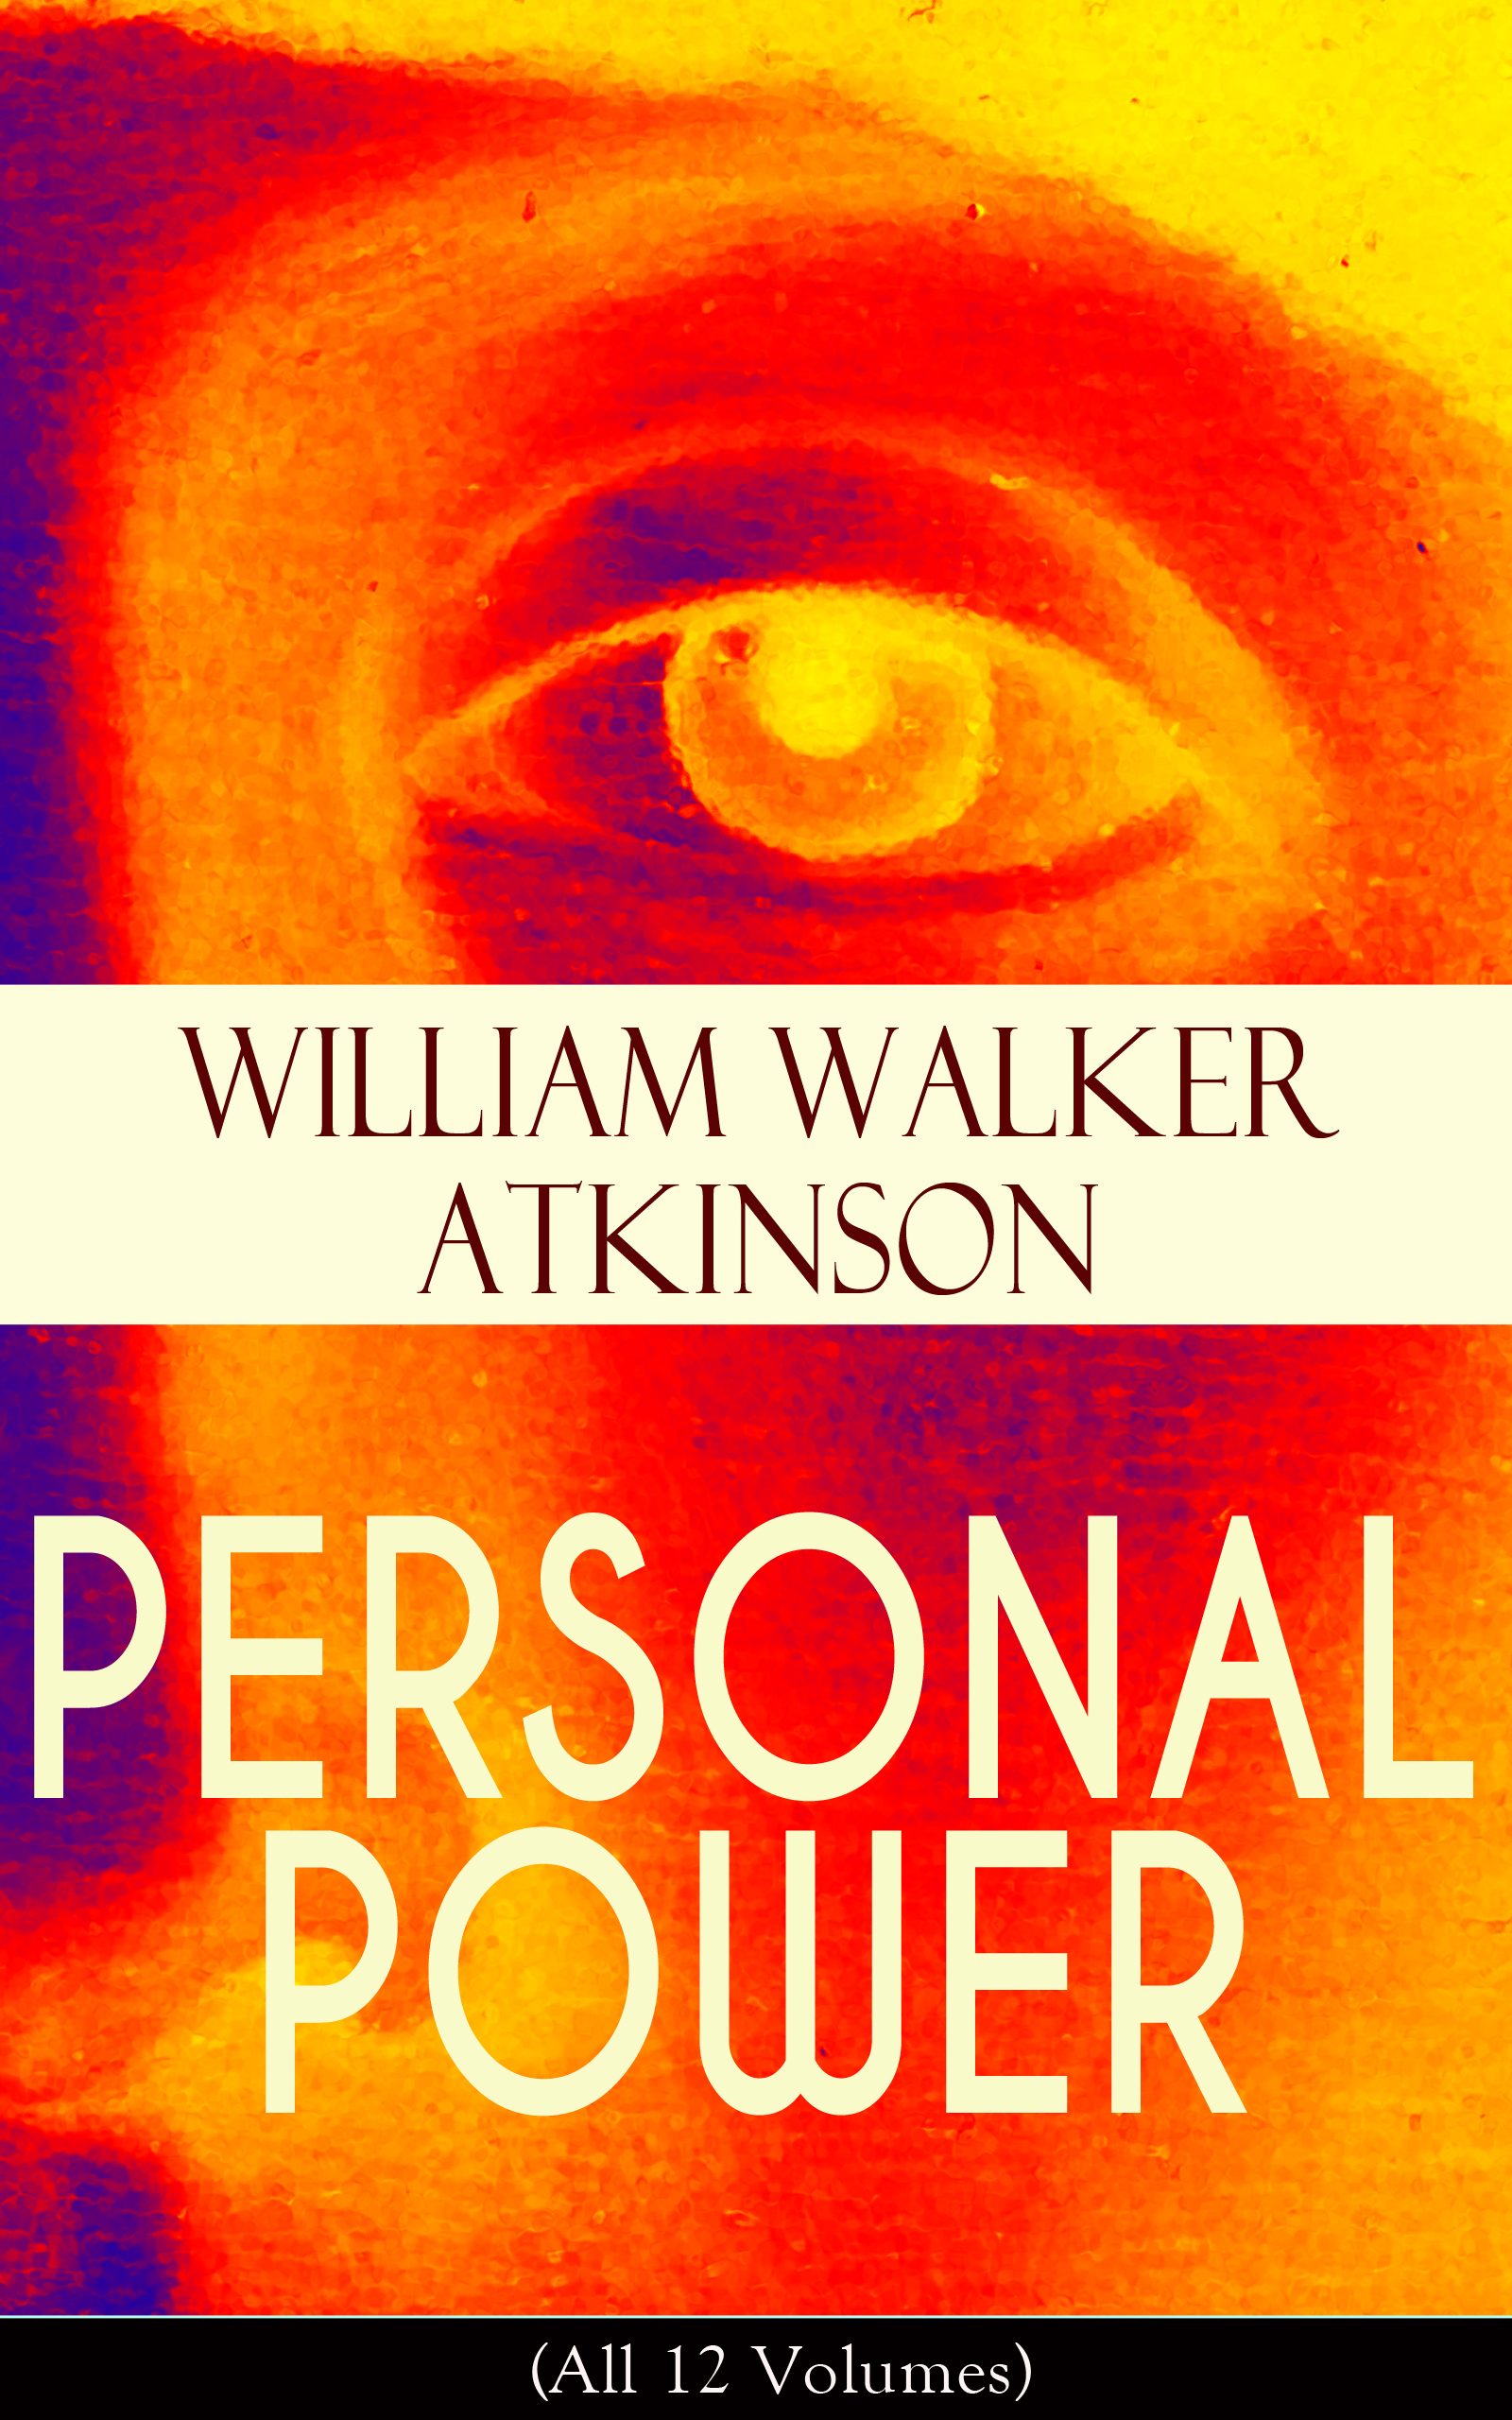 William Walker Atkinson PERSONAL POWER (All 12 Volumes)